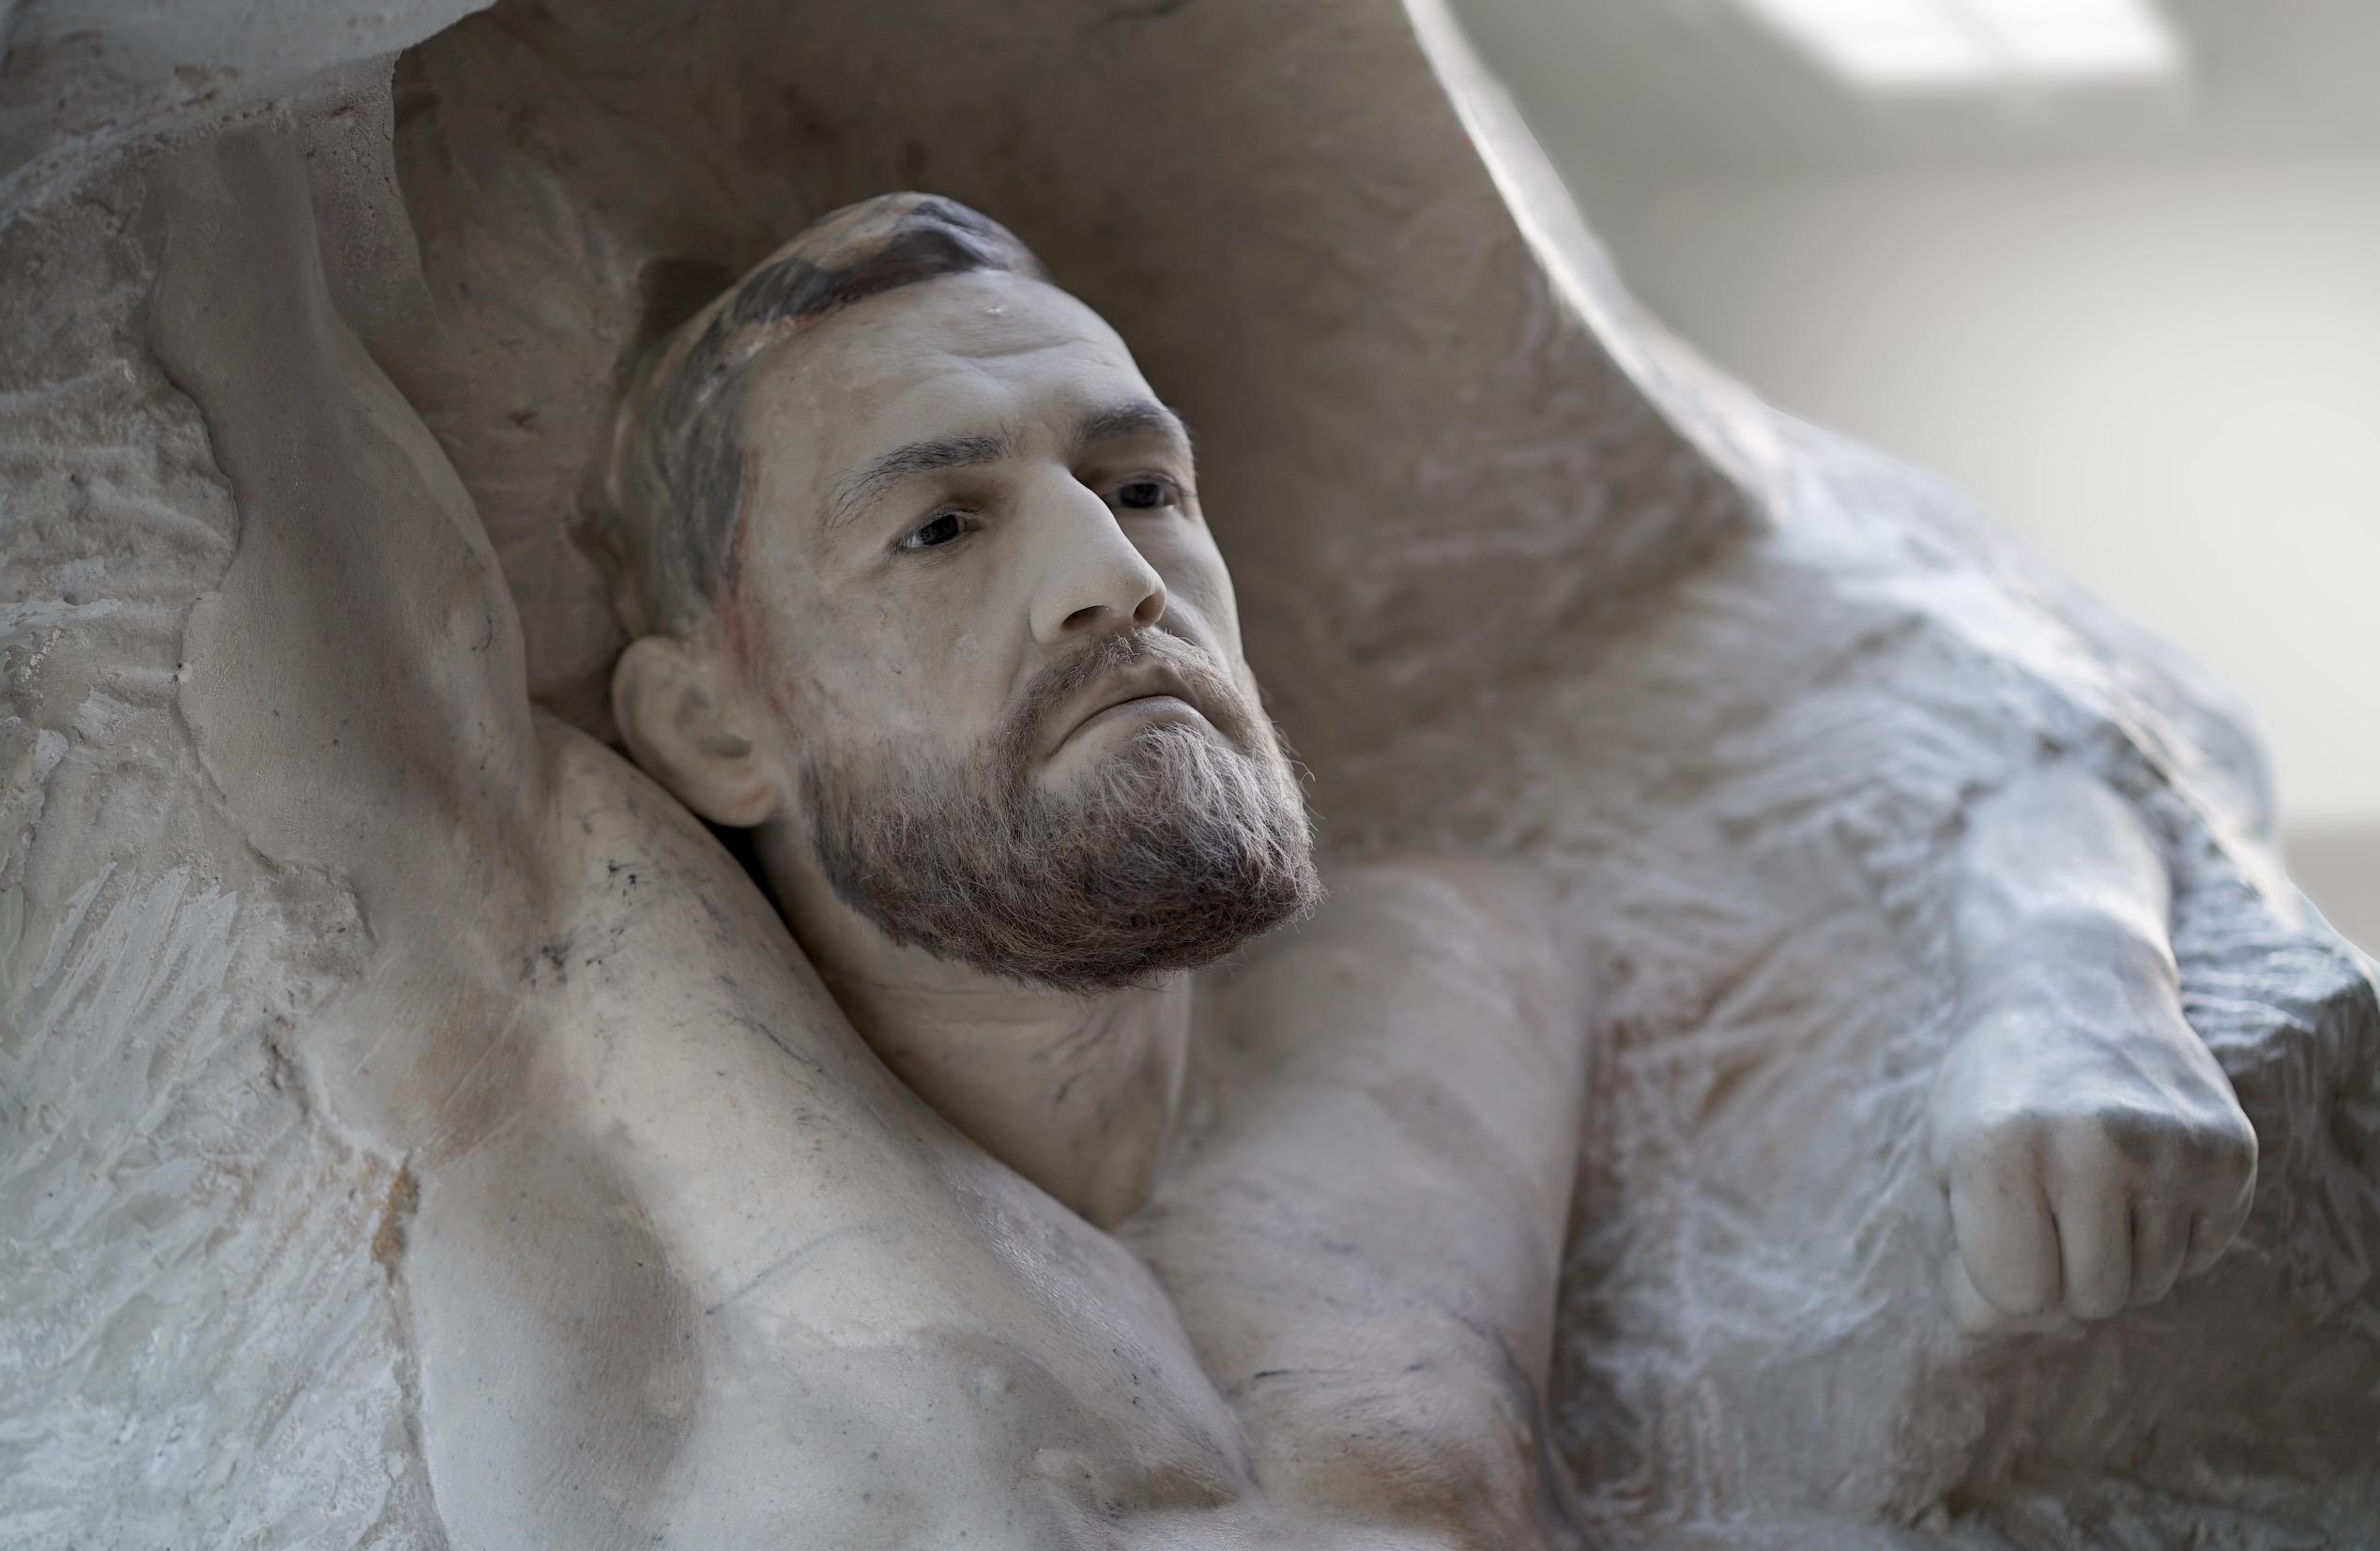 The piece took five months to create, and even used real hair for the UFC man's beard